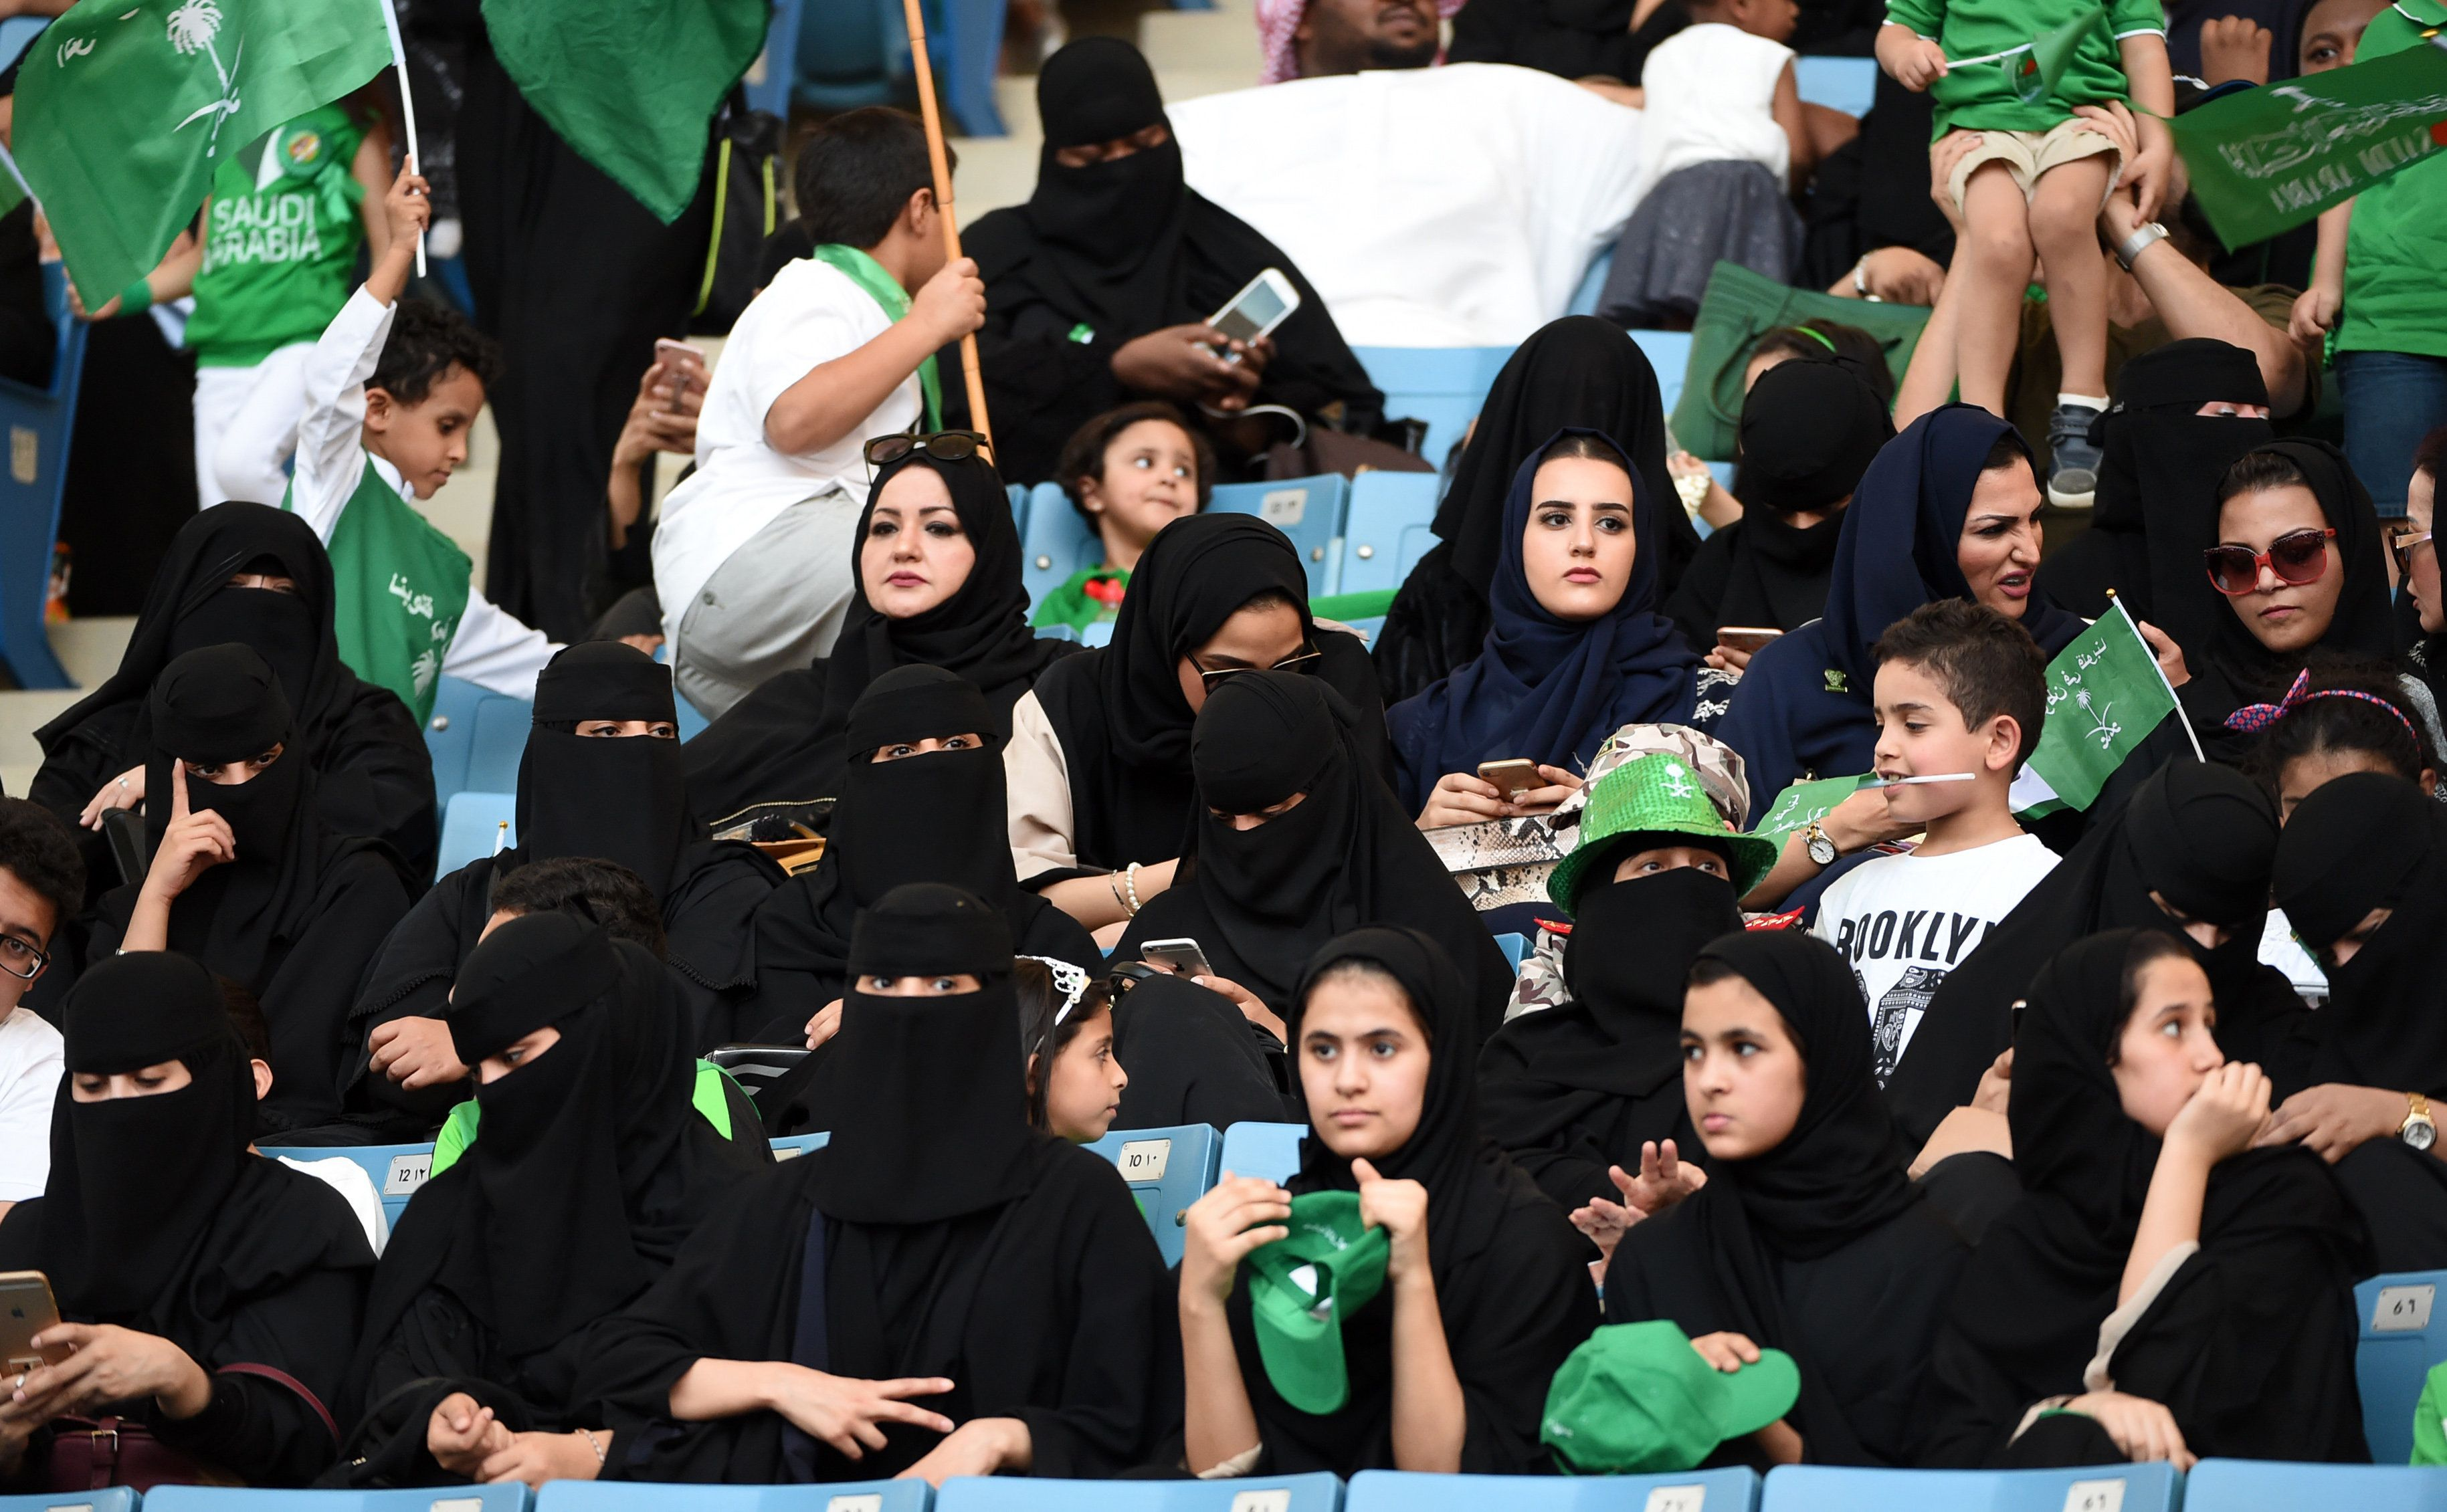 Saudis to open sports stadiums to women in reform push